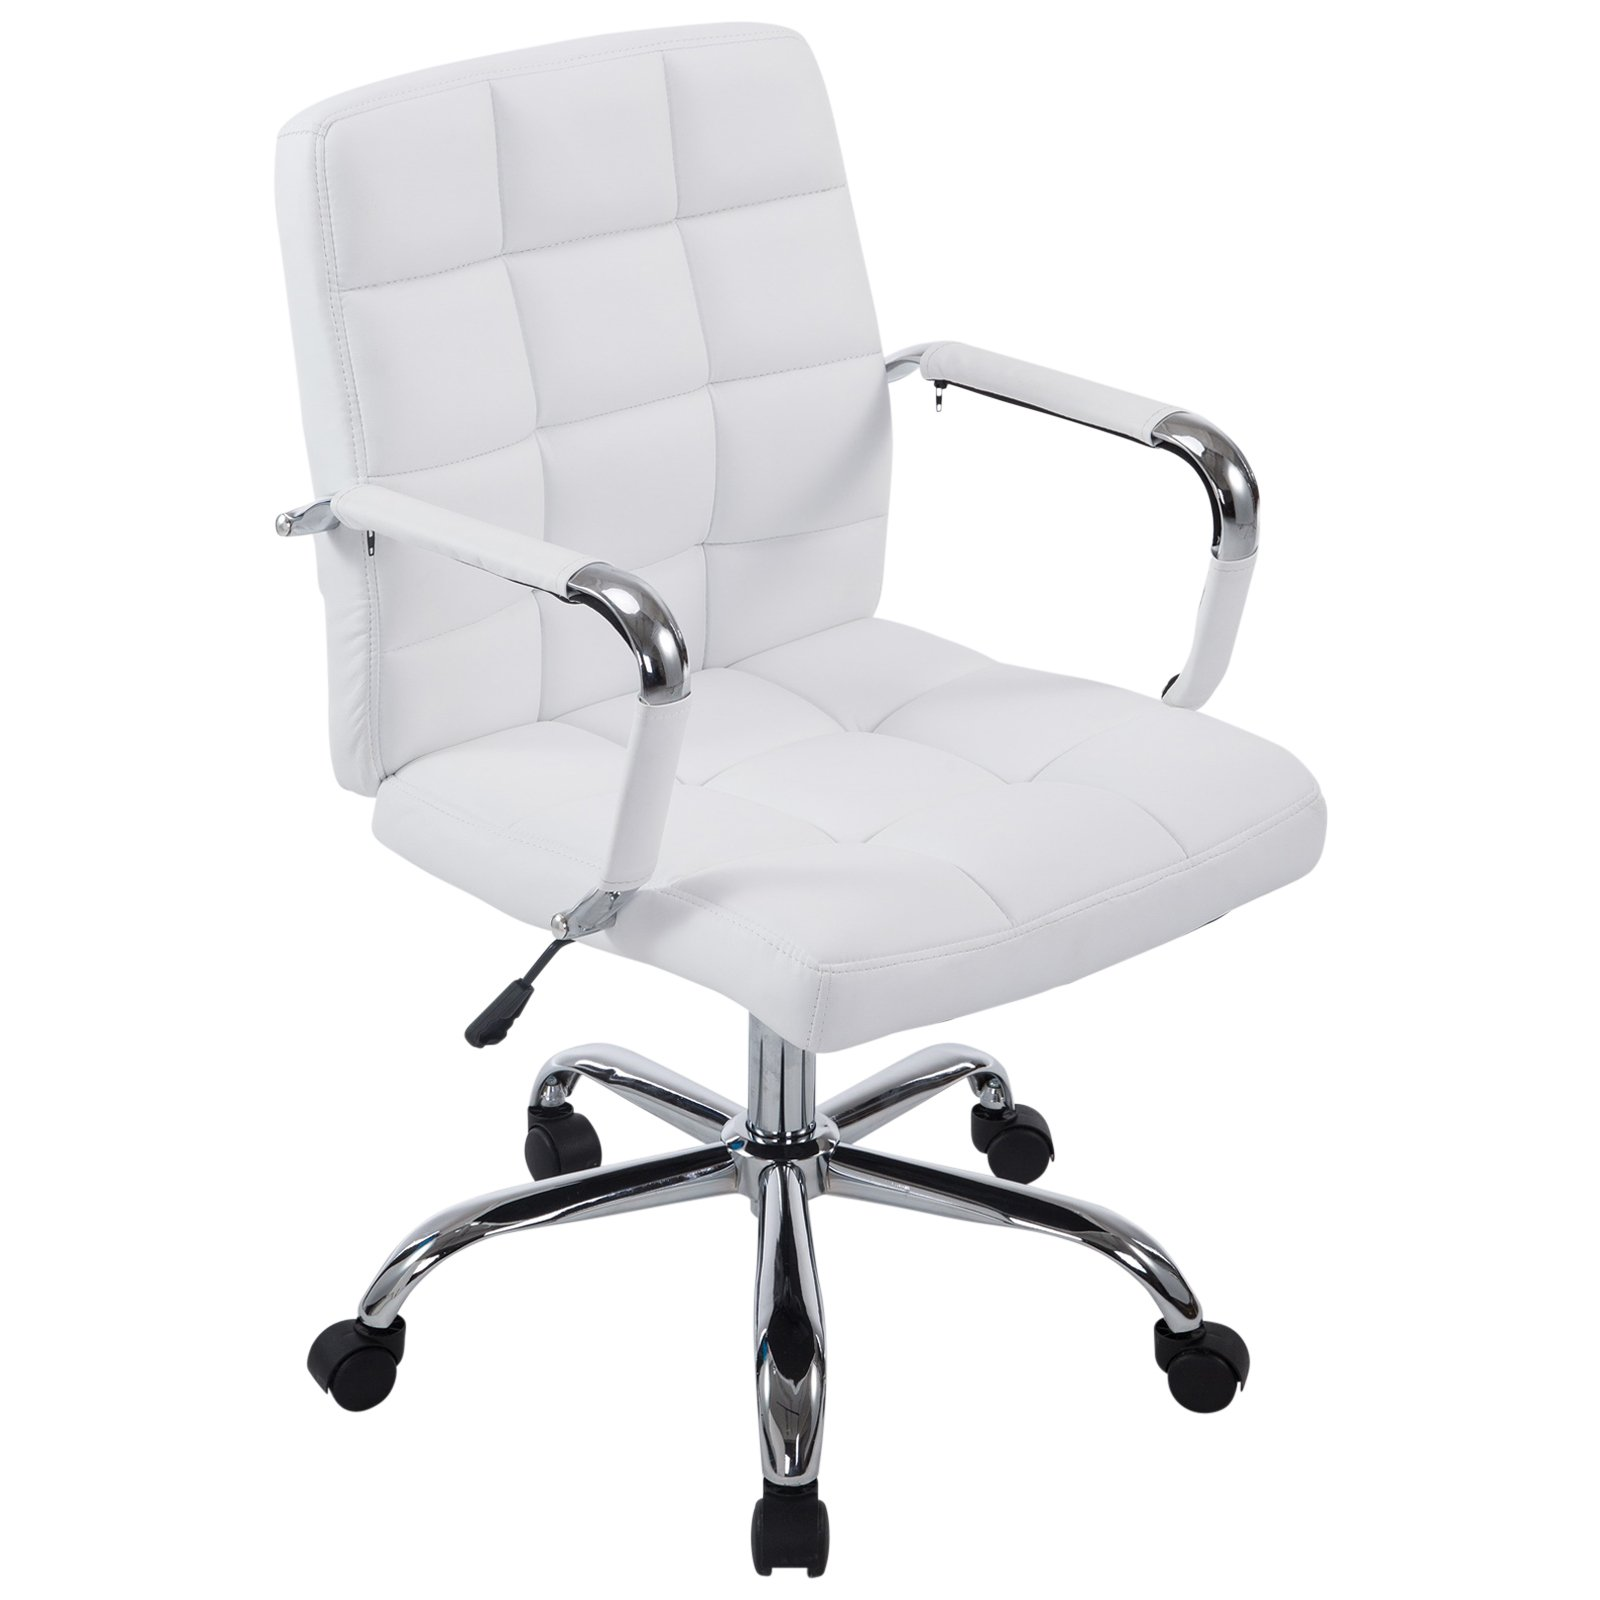 Poly and Bark Manchester Office Chair in Vegan Leather, White by POLY & BARK